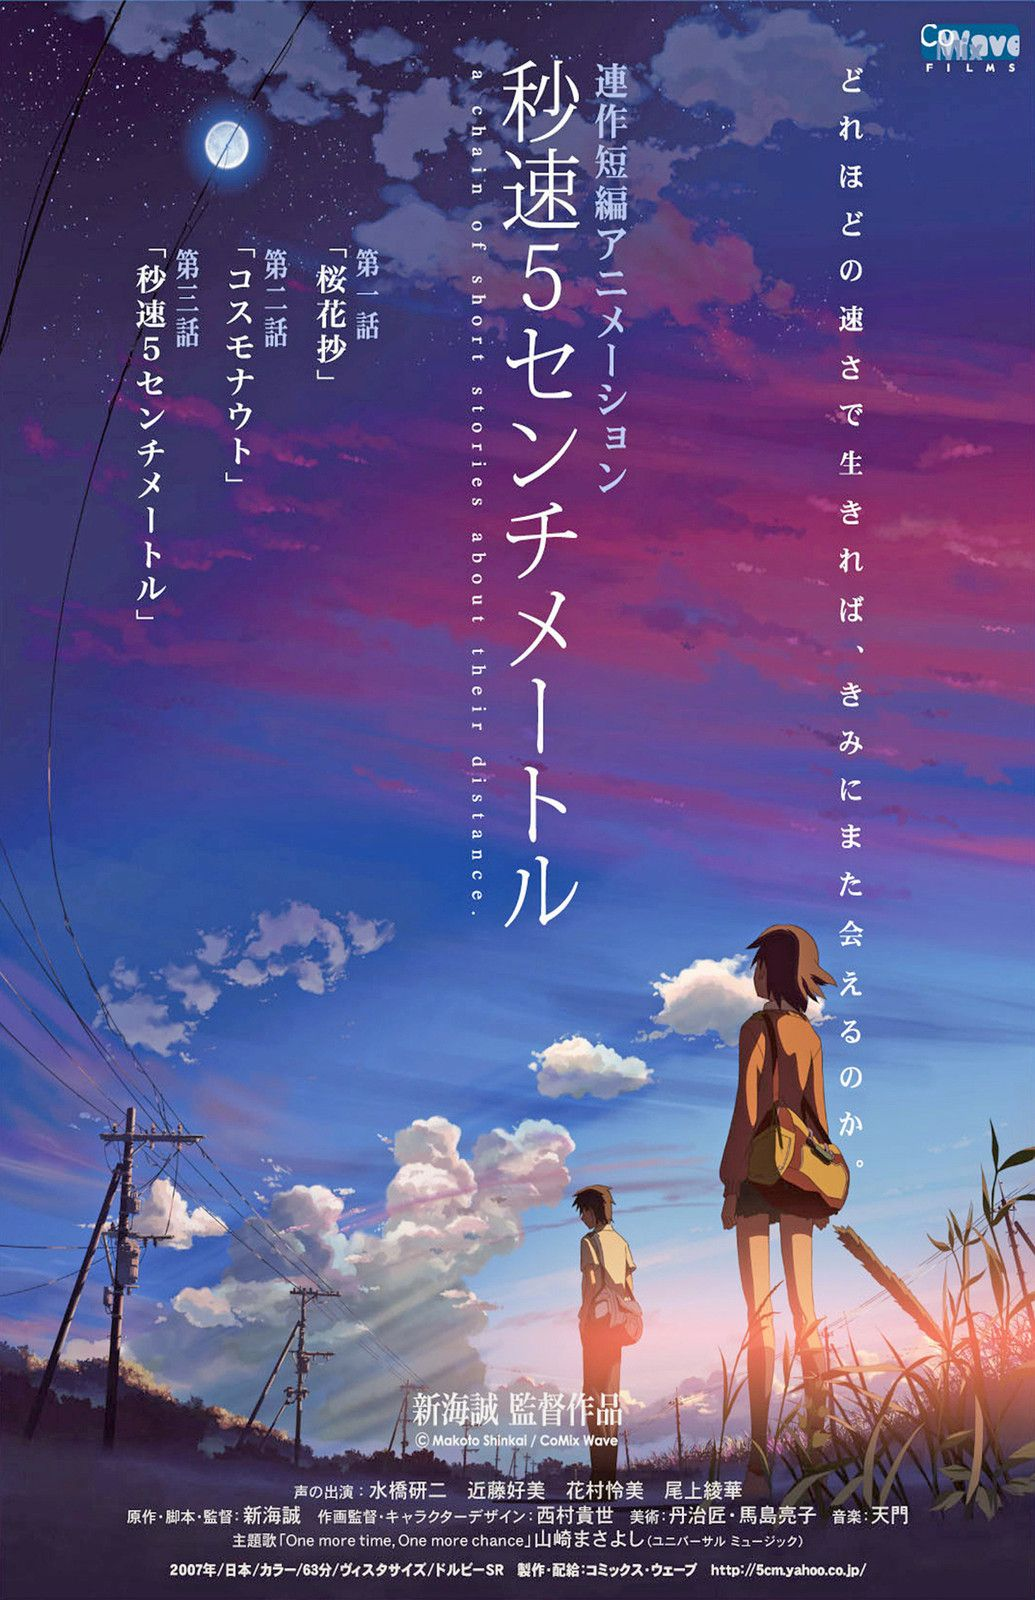 5 Centimeters Per Second (Byosoku Go Senchimetoru) short